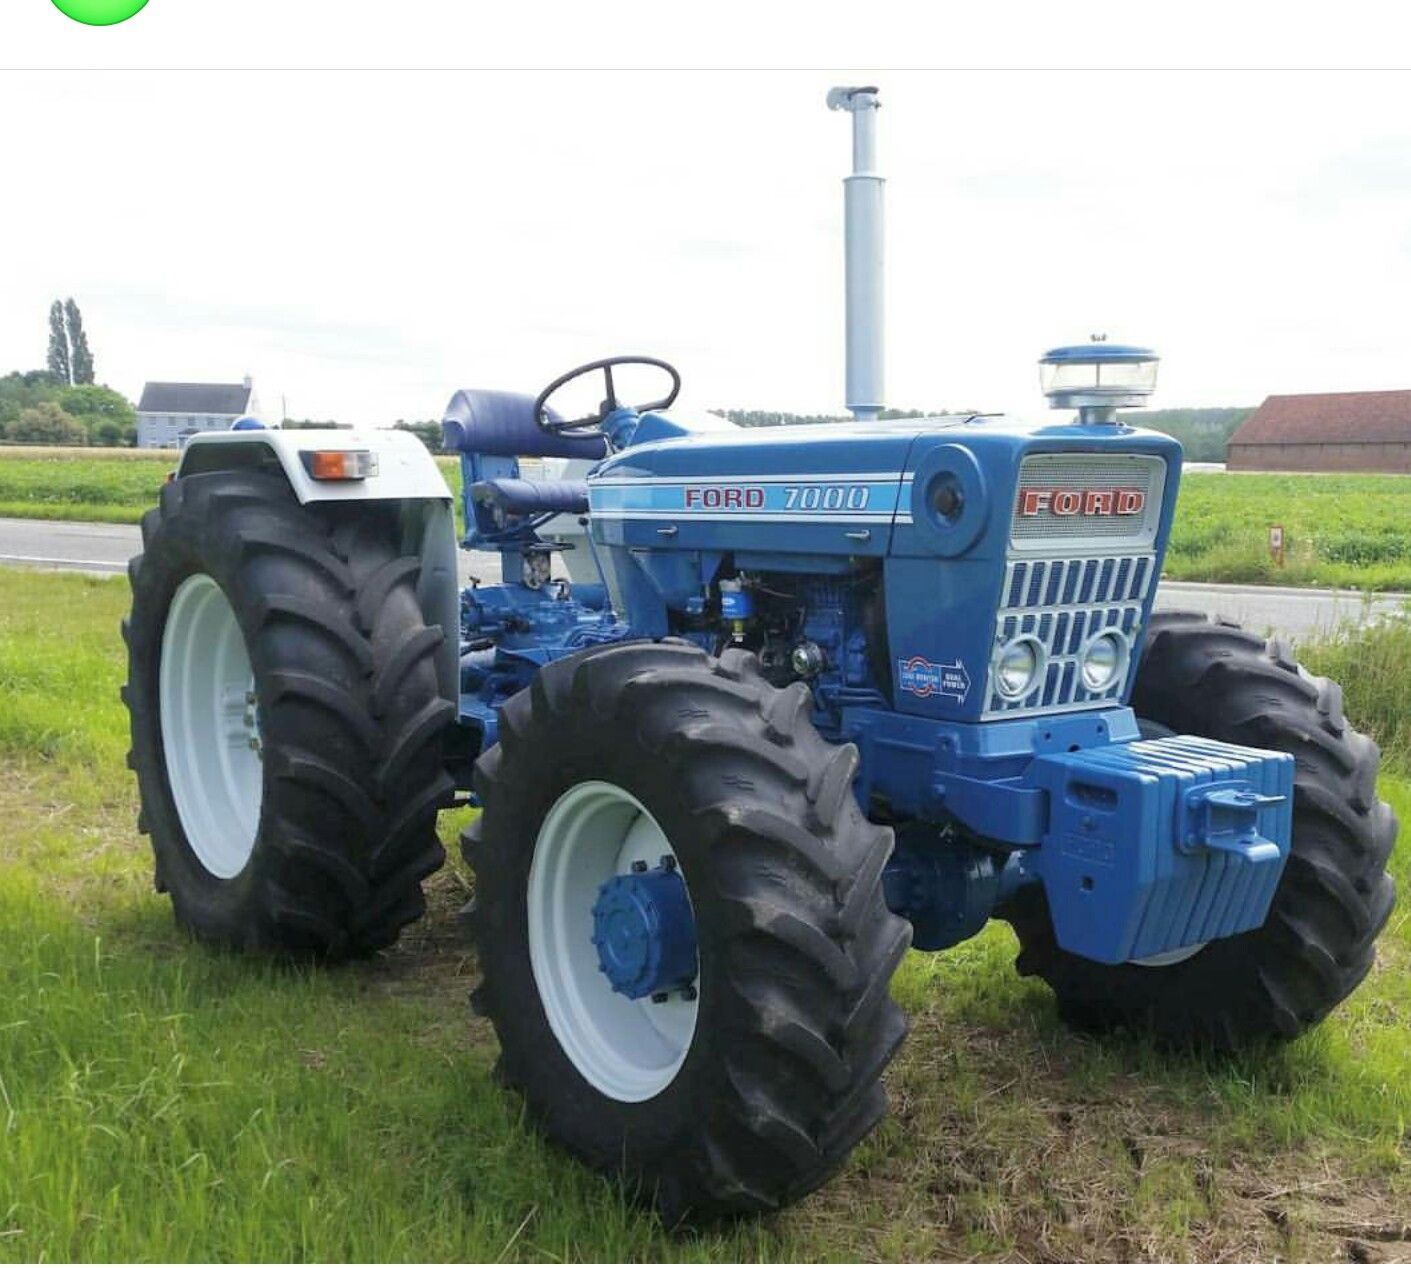 Ford 7000 Tractor : Ford and new holland tractors pinterest